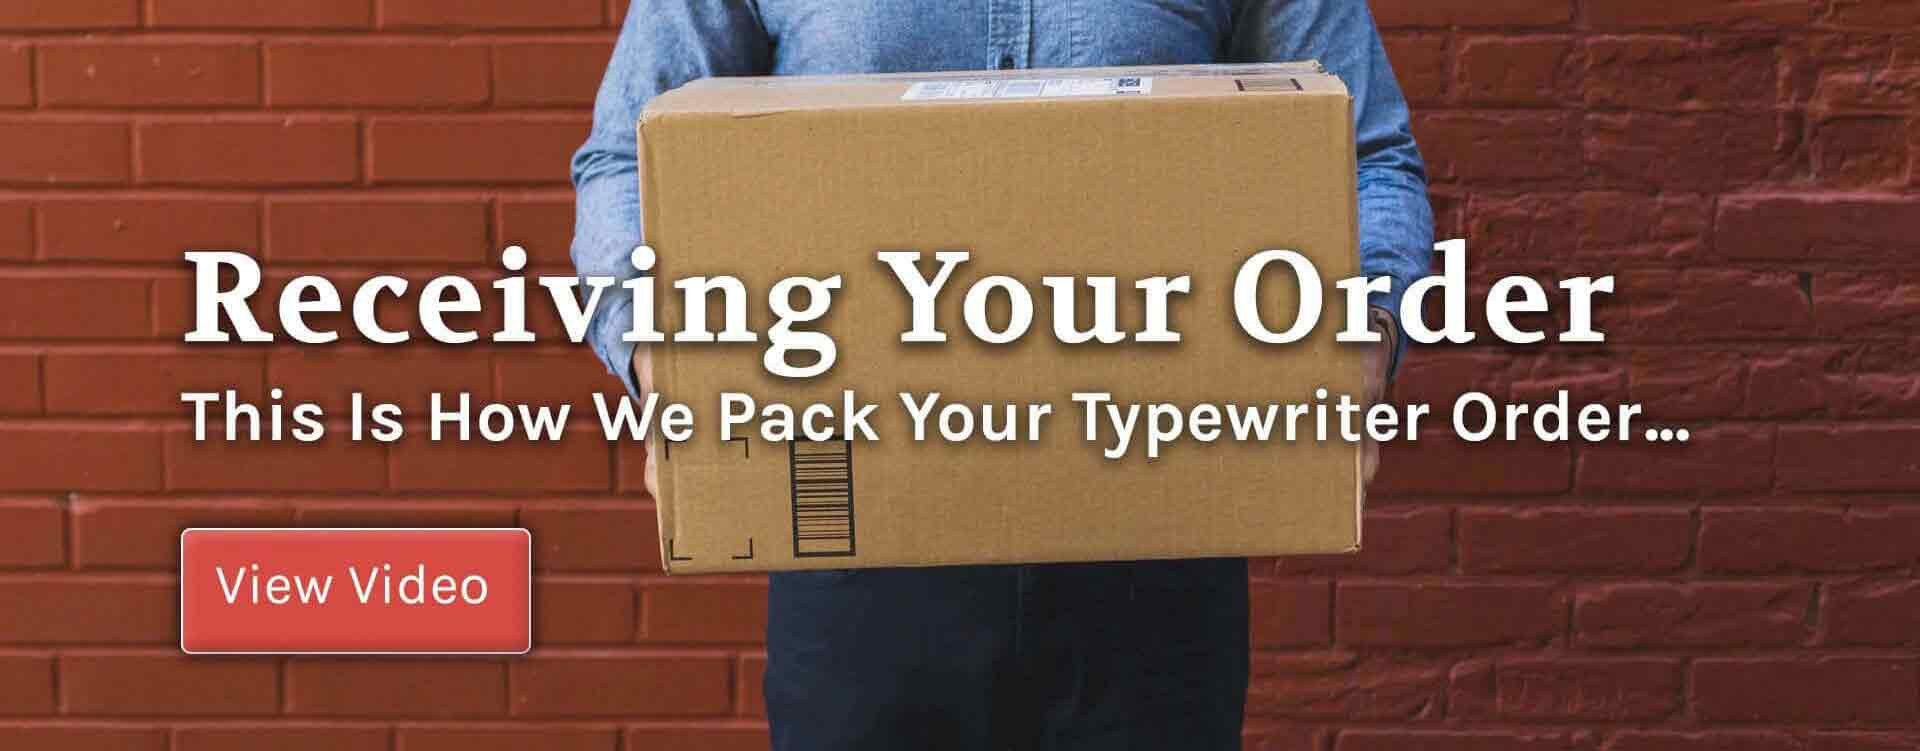 Receiving Your Order, This is How We Pack Your Typewriter Order..., Click to View Video